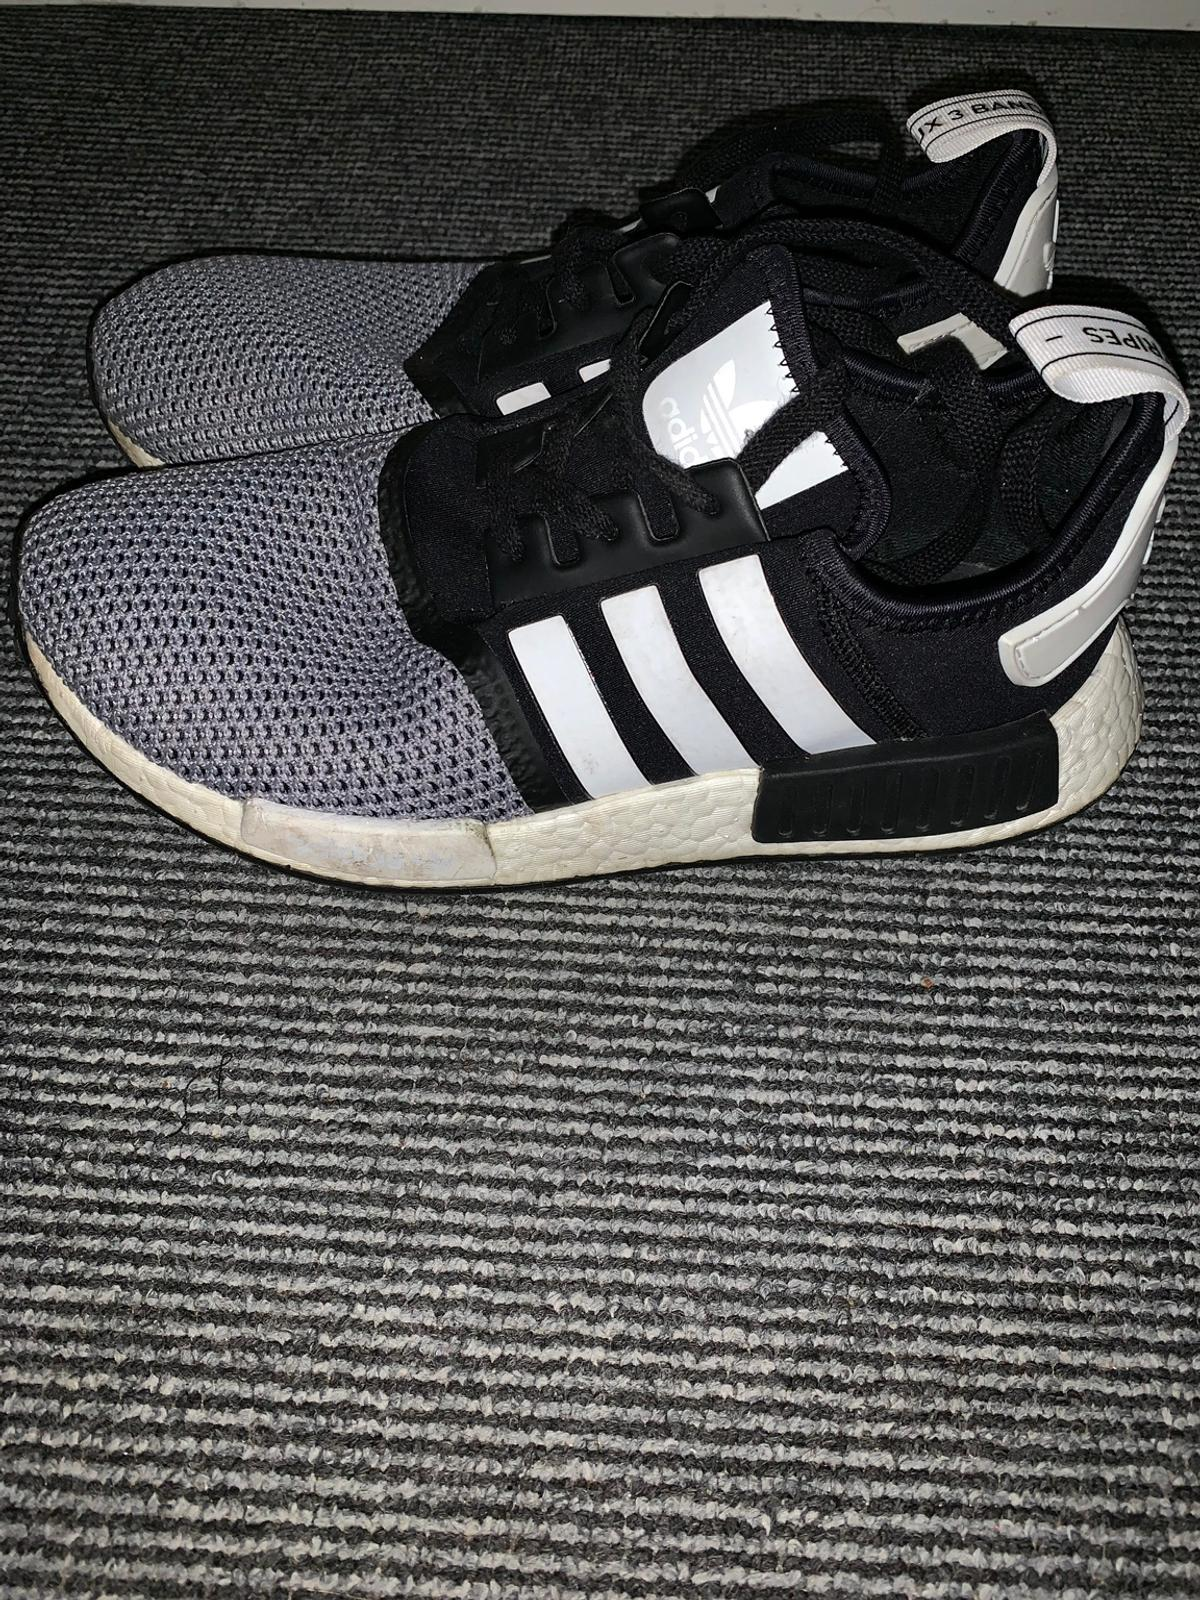 616539a373aa6 Adidas NMD in BH1 Bournemouth for £30.00 for sale - Shpock